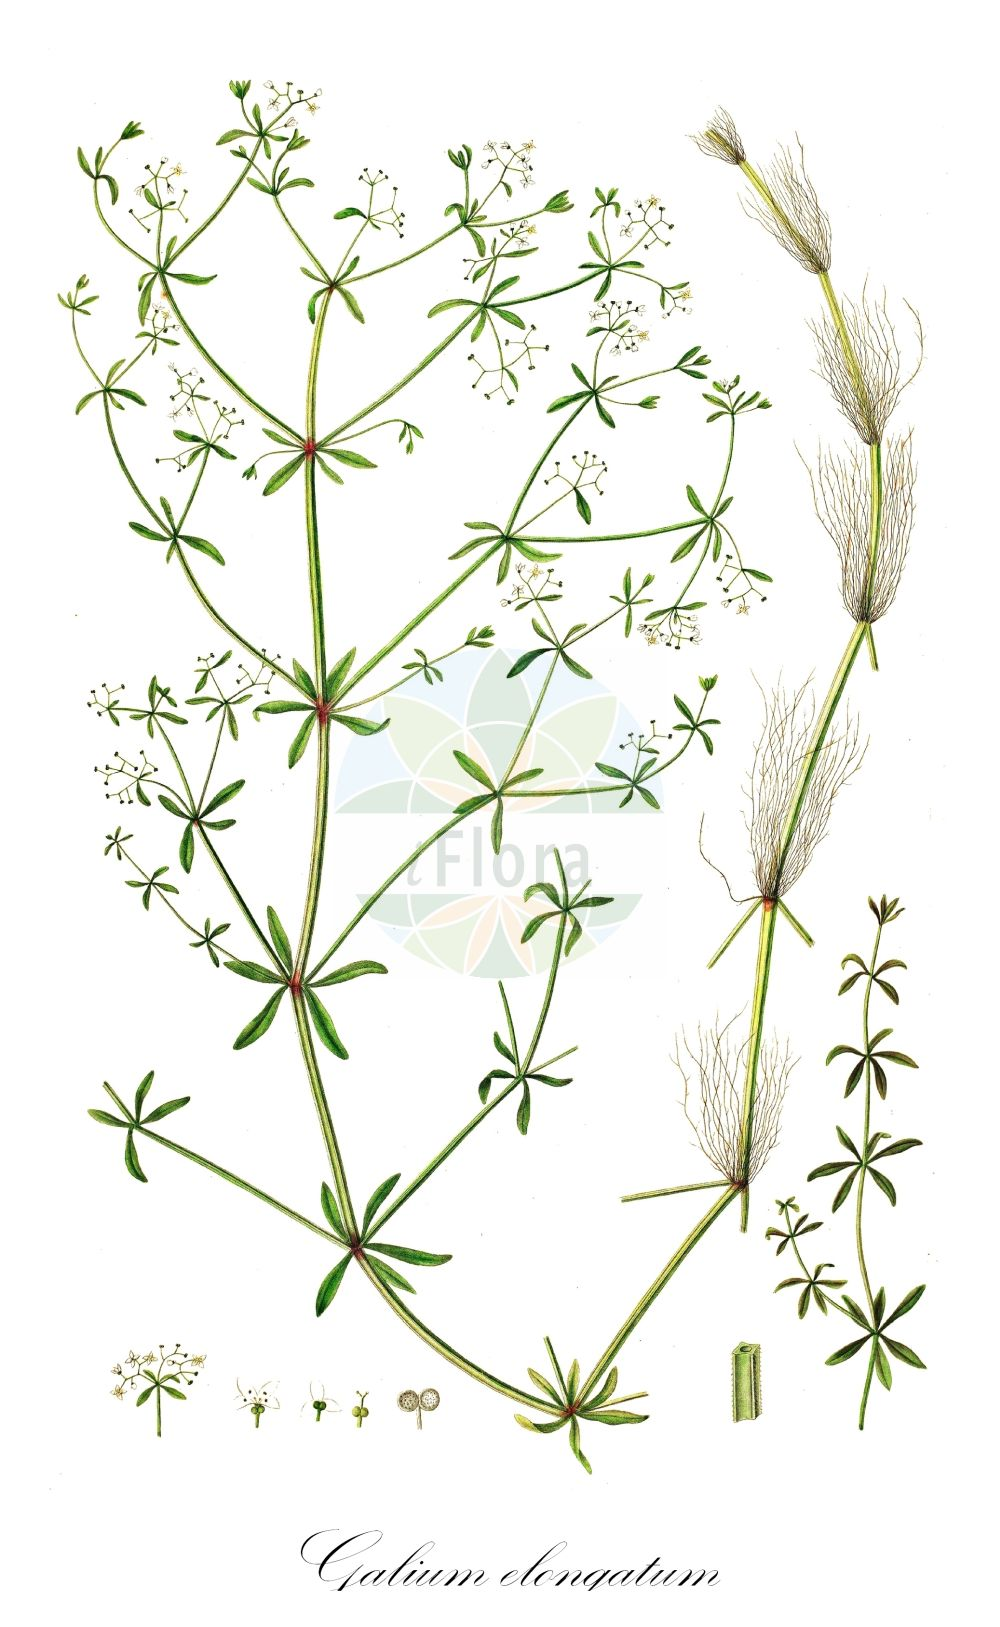 Historische Abbildung von Galium elongatum (Hohes Labkraut - Great Marsh Bedstraw). Das Bild zeigt Blatt, Bluete, Frucht und Same. ---- Historical Drawing of Galium elongatum (Hohes Labkraut - Great Marsh Bedstraw).The image is showing leaf, flower, fruit and seed.(Galium elongatum,Hohes Labkraut,Great Marsh Bedstraw,Galium maximum,Galium palustre subsp. elongatum,Galium,Labkraut,Bedstraw,Rubiaceae,Roetegewaechse;Kaffeegewaechse;Krappgewaechse;Labkrautgewaechse,Bedstraw family,Blatt,Bluete,Frucht,Same,leaf,flower,fruit,seed,Oeder (1761-1883))